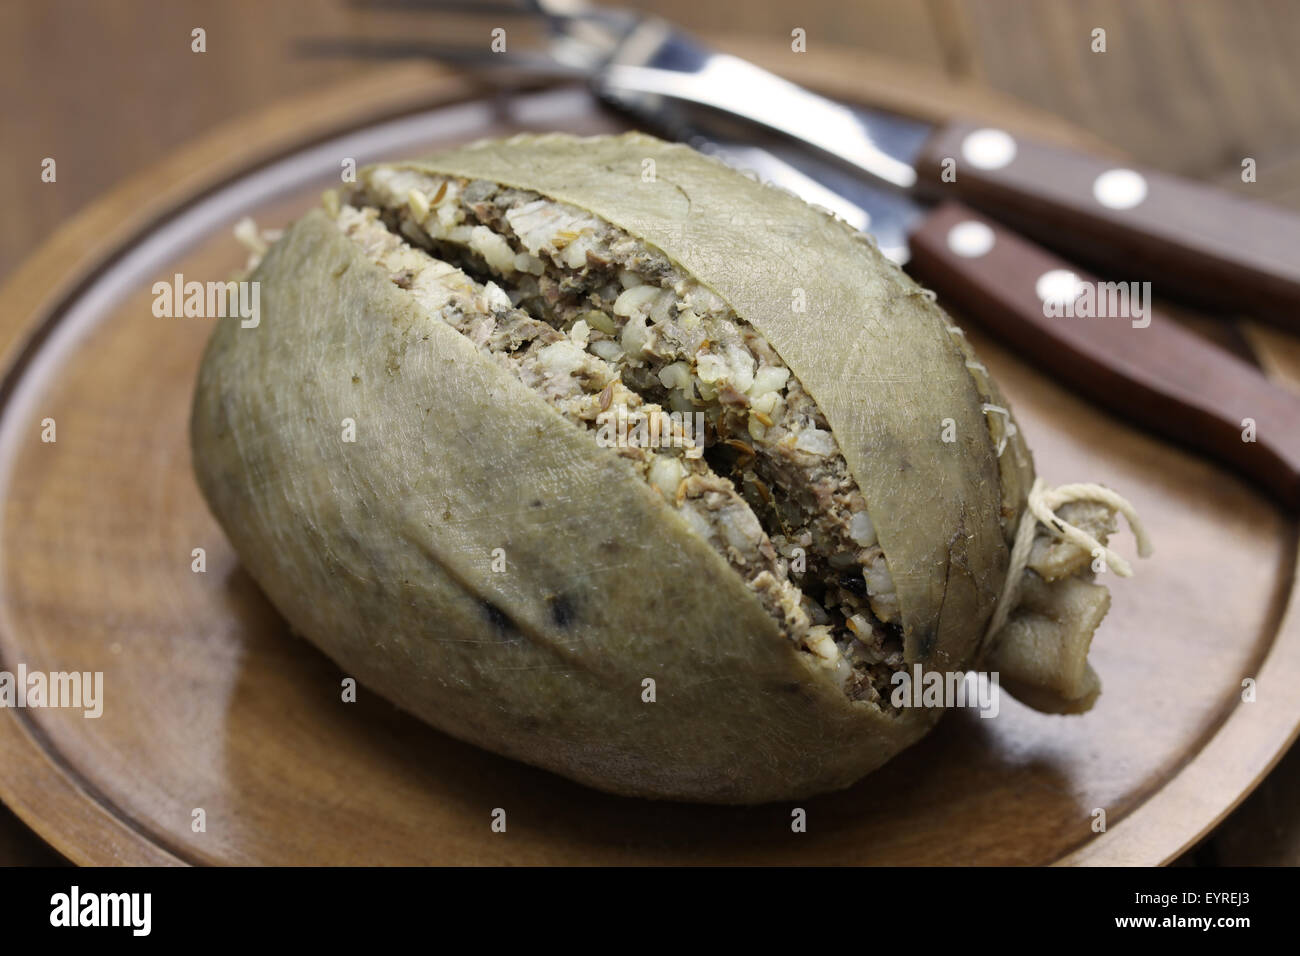 homemade haggis, scotland food isolated on wooden background Stock Photo